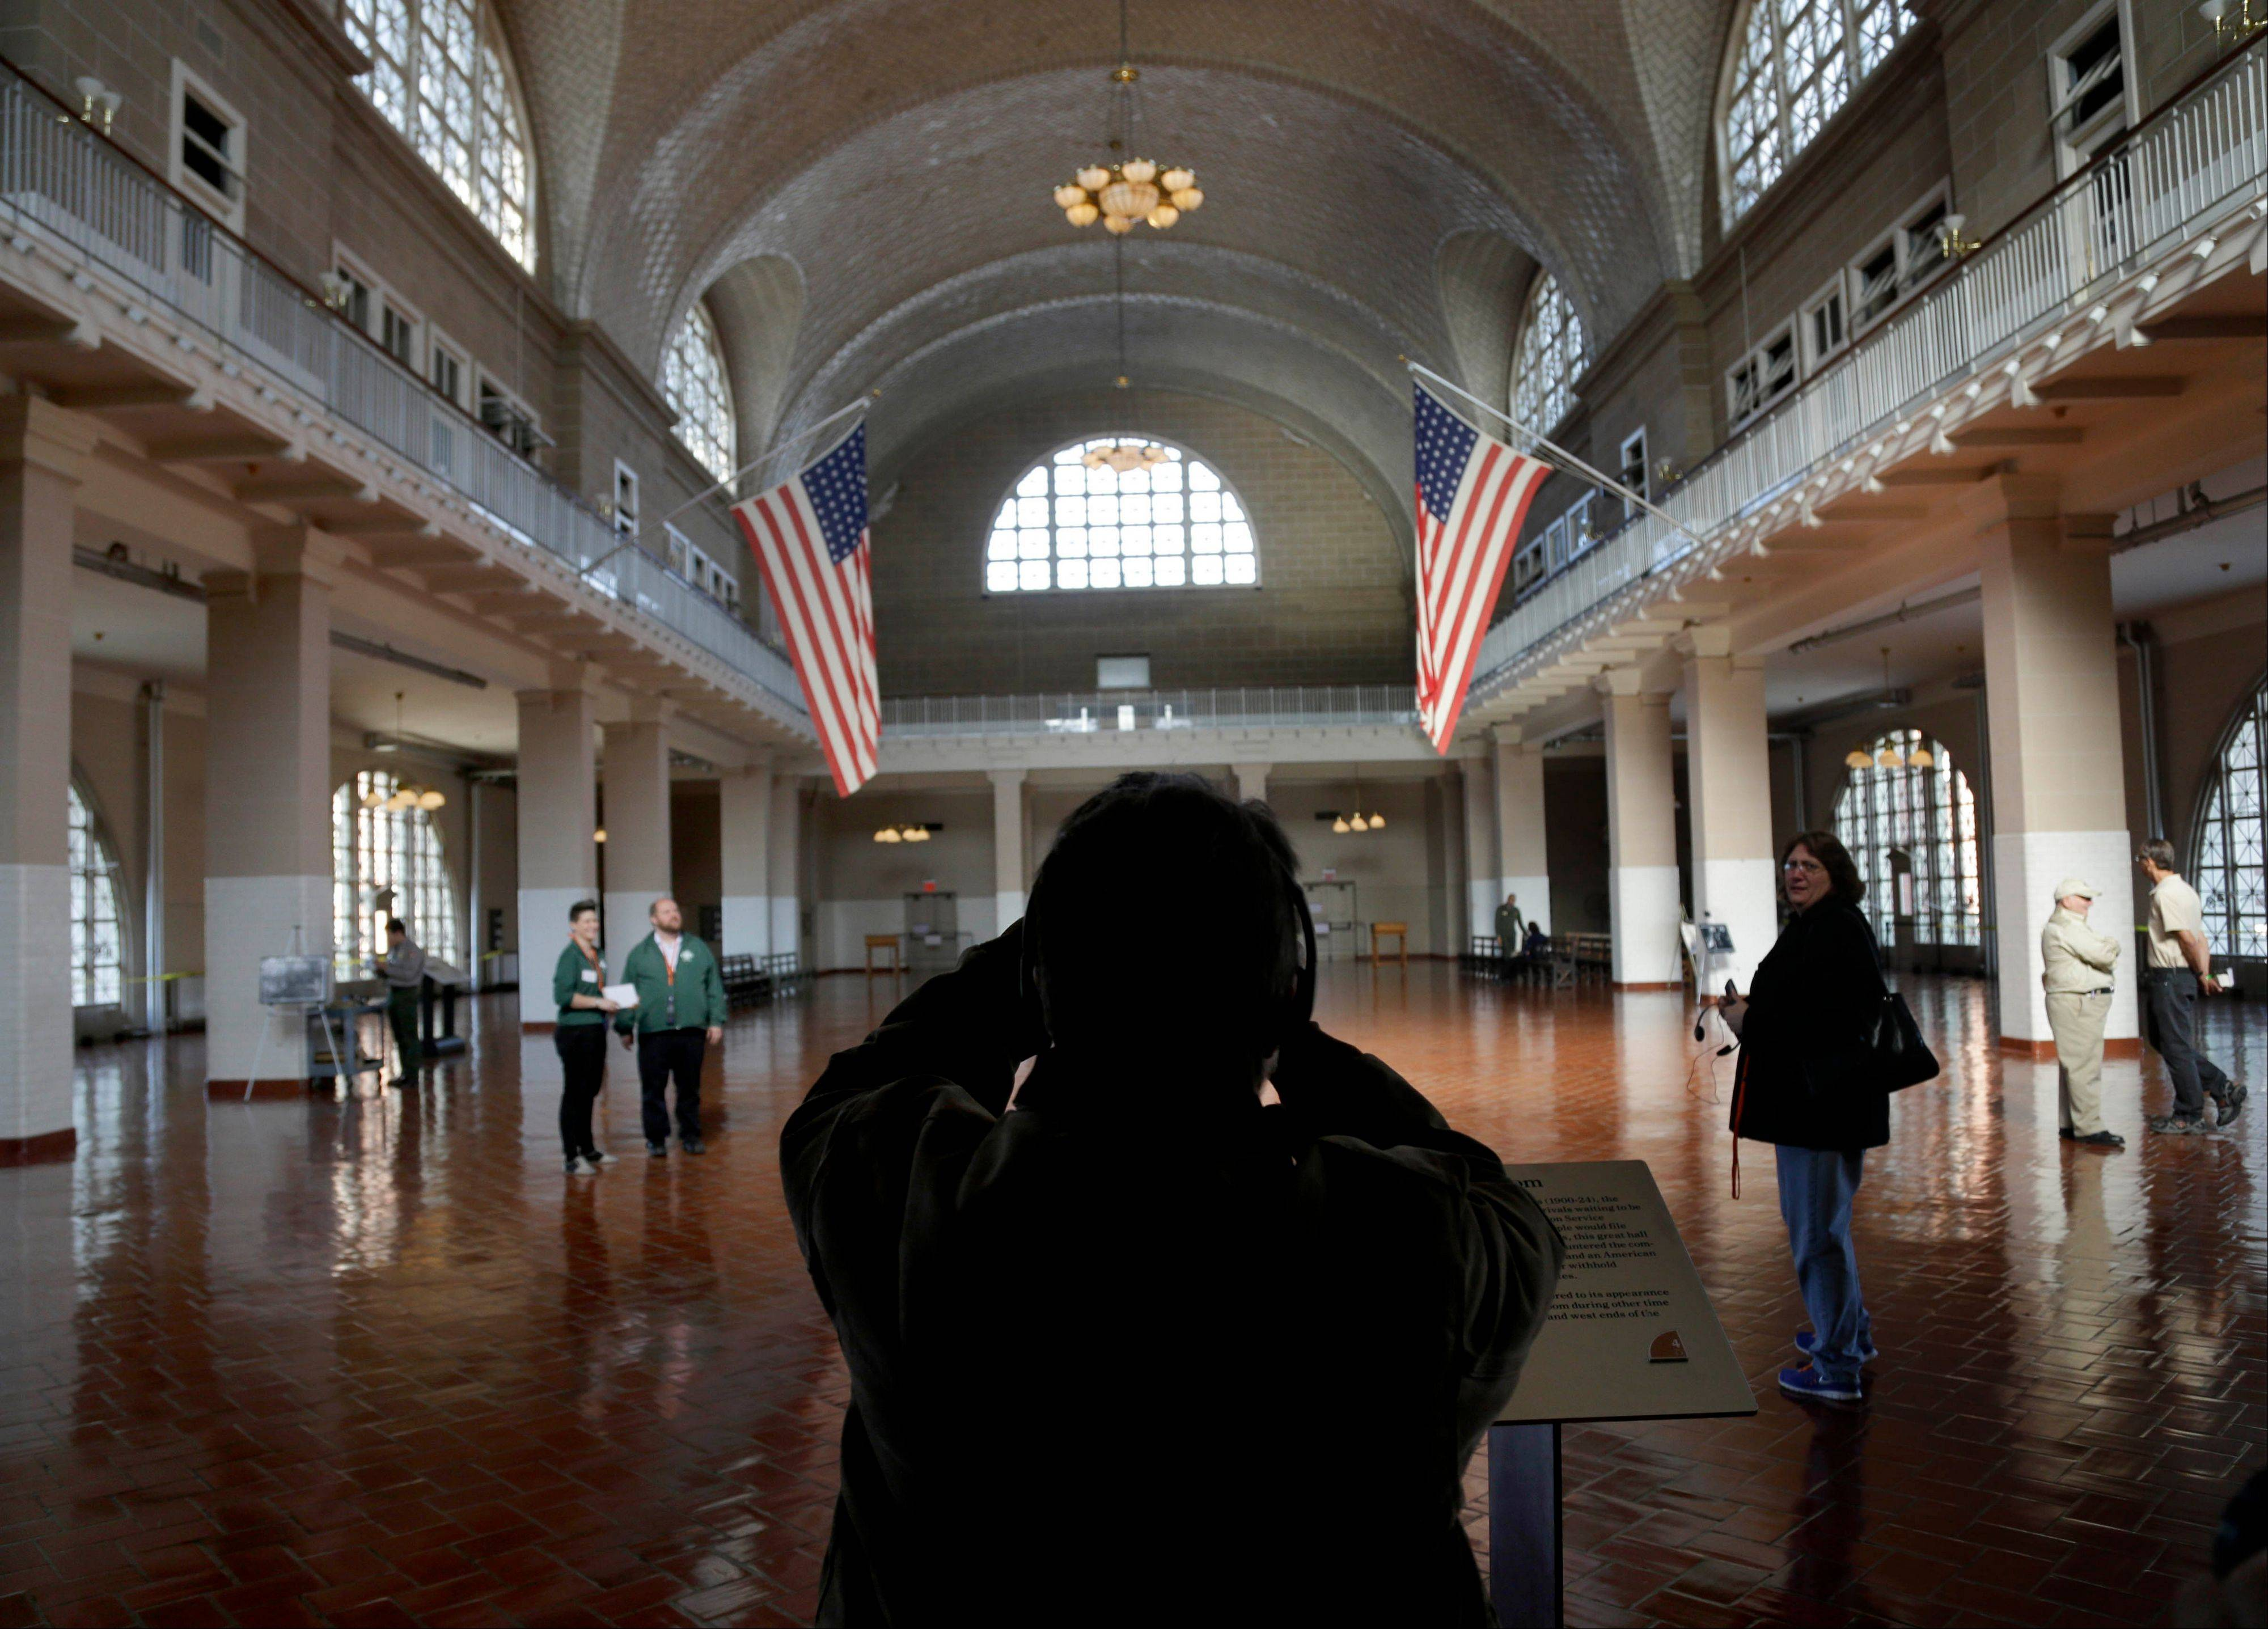 A visitor to the newly re-opened Ellis Island stops to take a picture of the registry room in New York on Monday. The island that ushered millions of immigrants into the United States received visitors Monday for the first time since Superstorm Sandy. Sandy swamped boilers and electrical systems and left the 27.5-acre island without power for months.